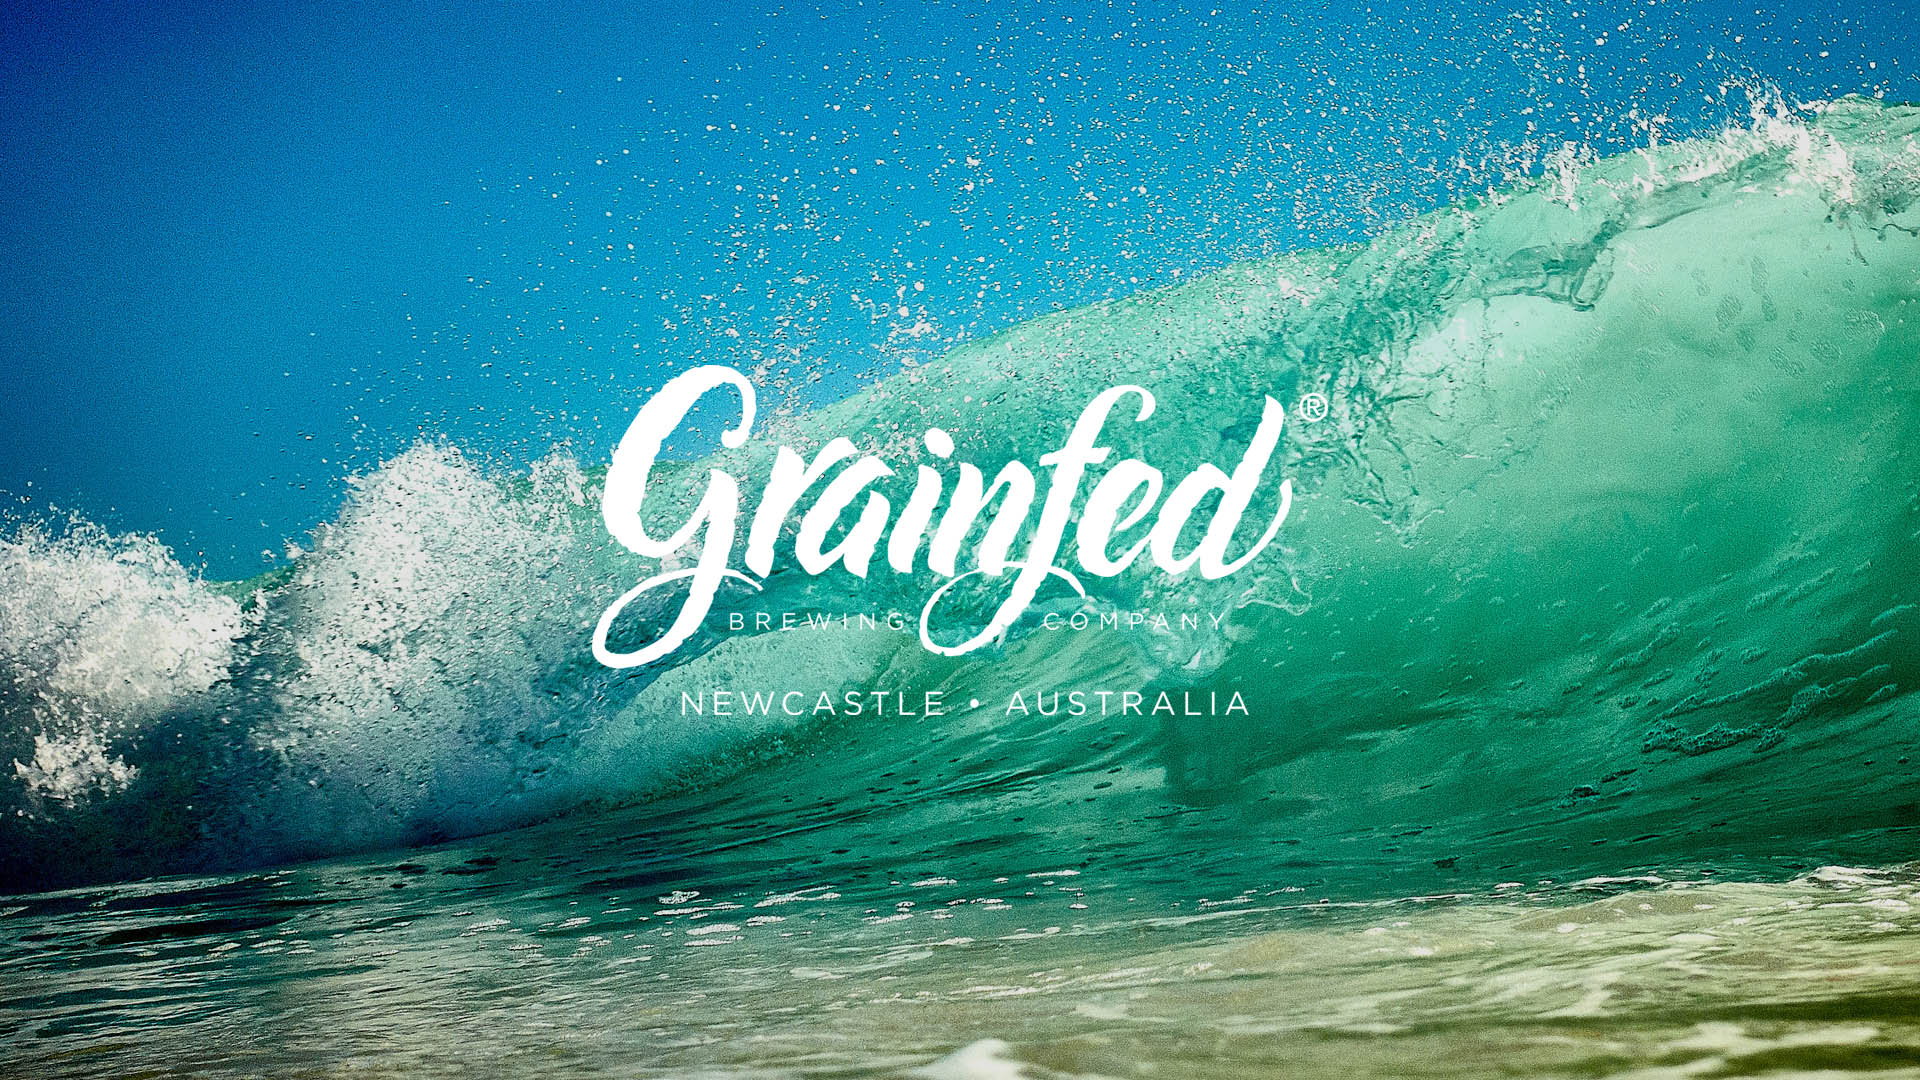 Grainfed Brewing Craft Beer Newcastle